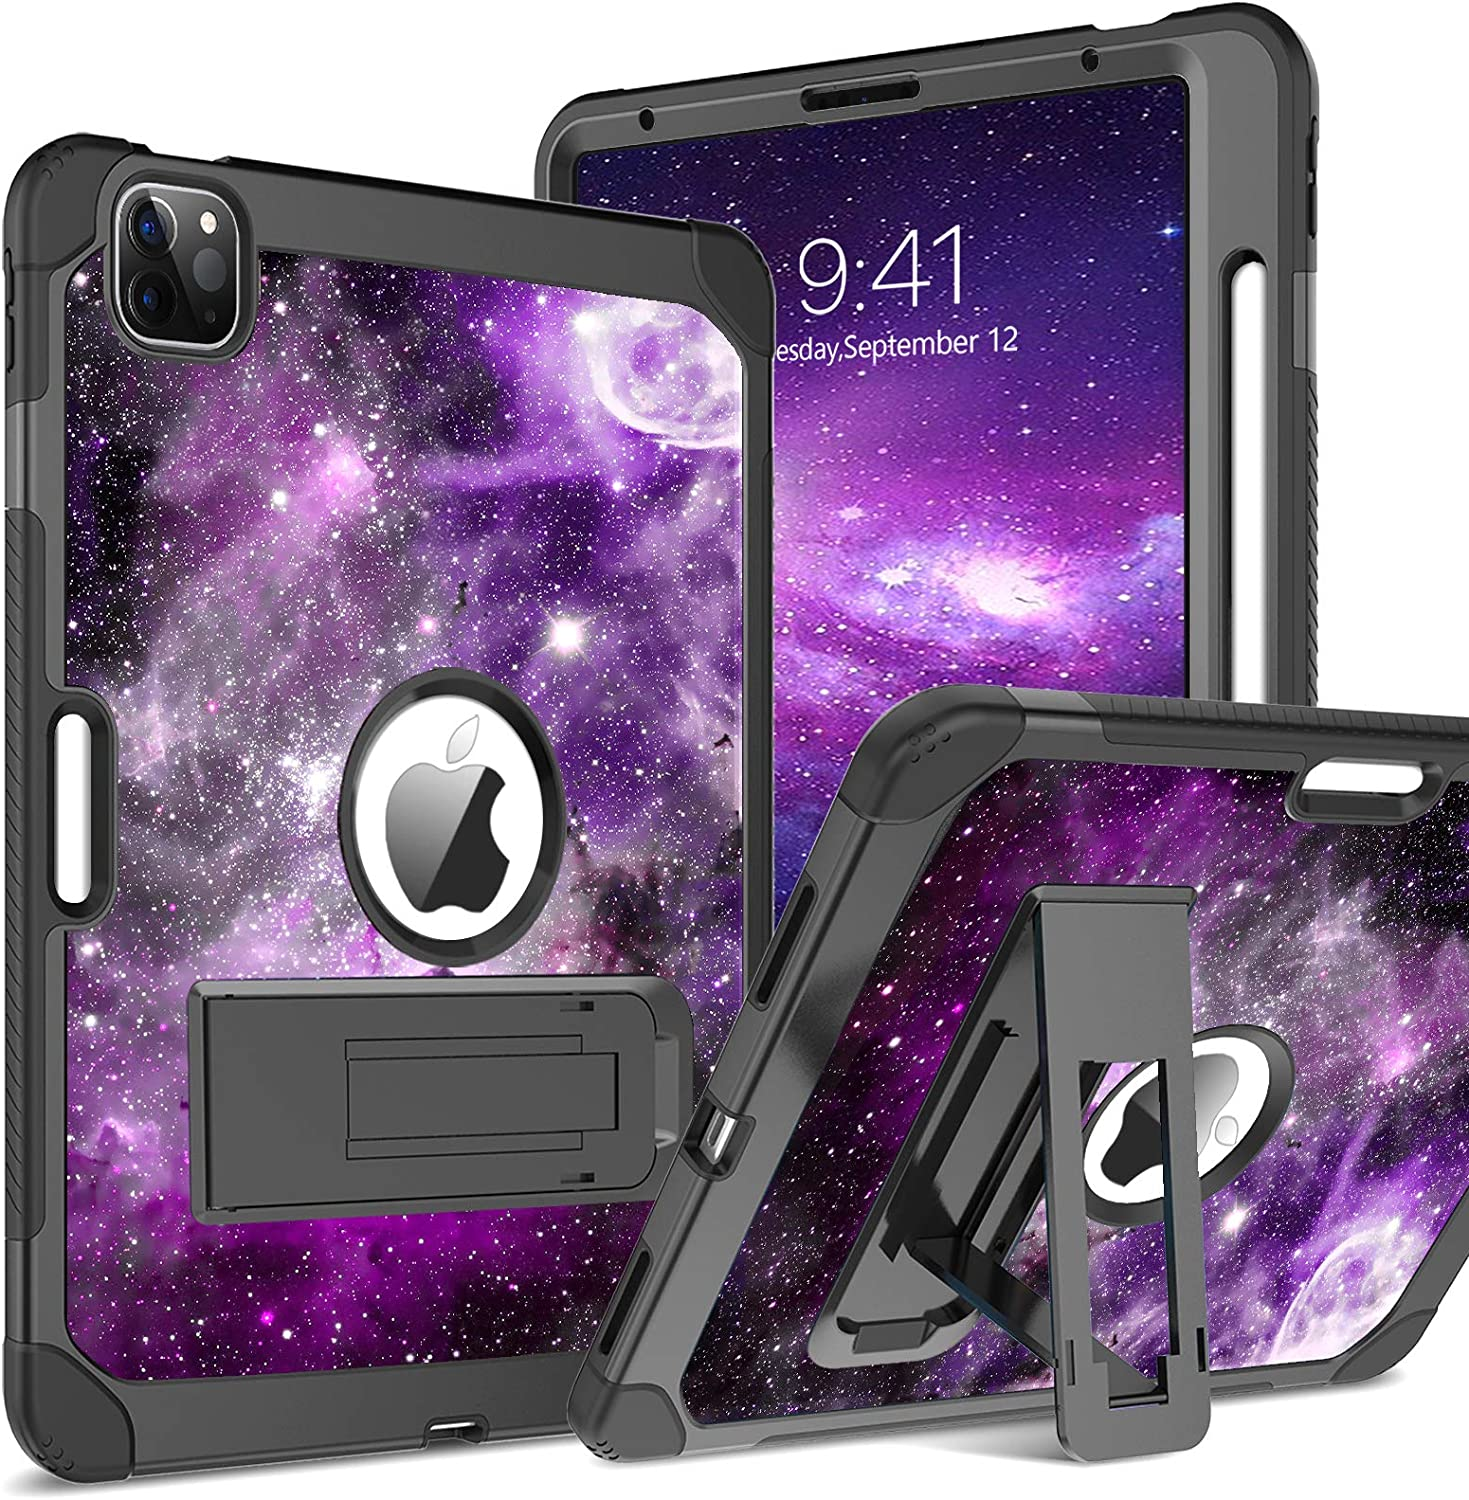 BENTOBEN New iPad Air 4 Case 2020 10.9 inch, Heavy Duty Rugged Glow in The Dark 3 in 1 Shockproof Kickstand Protective Bumper Girls Women Boy Men Tablet Cover for iPad Air 4th Gen, Space/Nebula Design